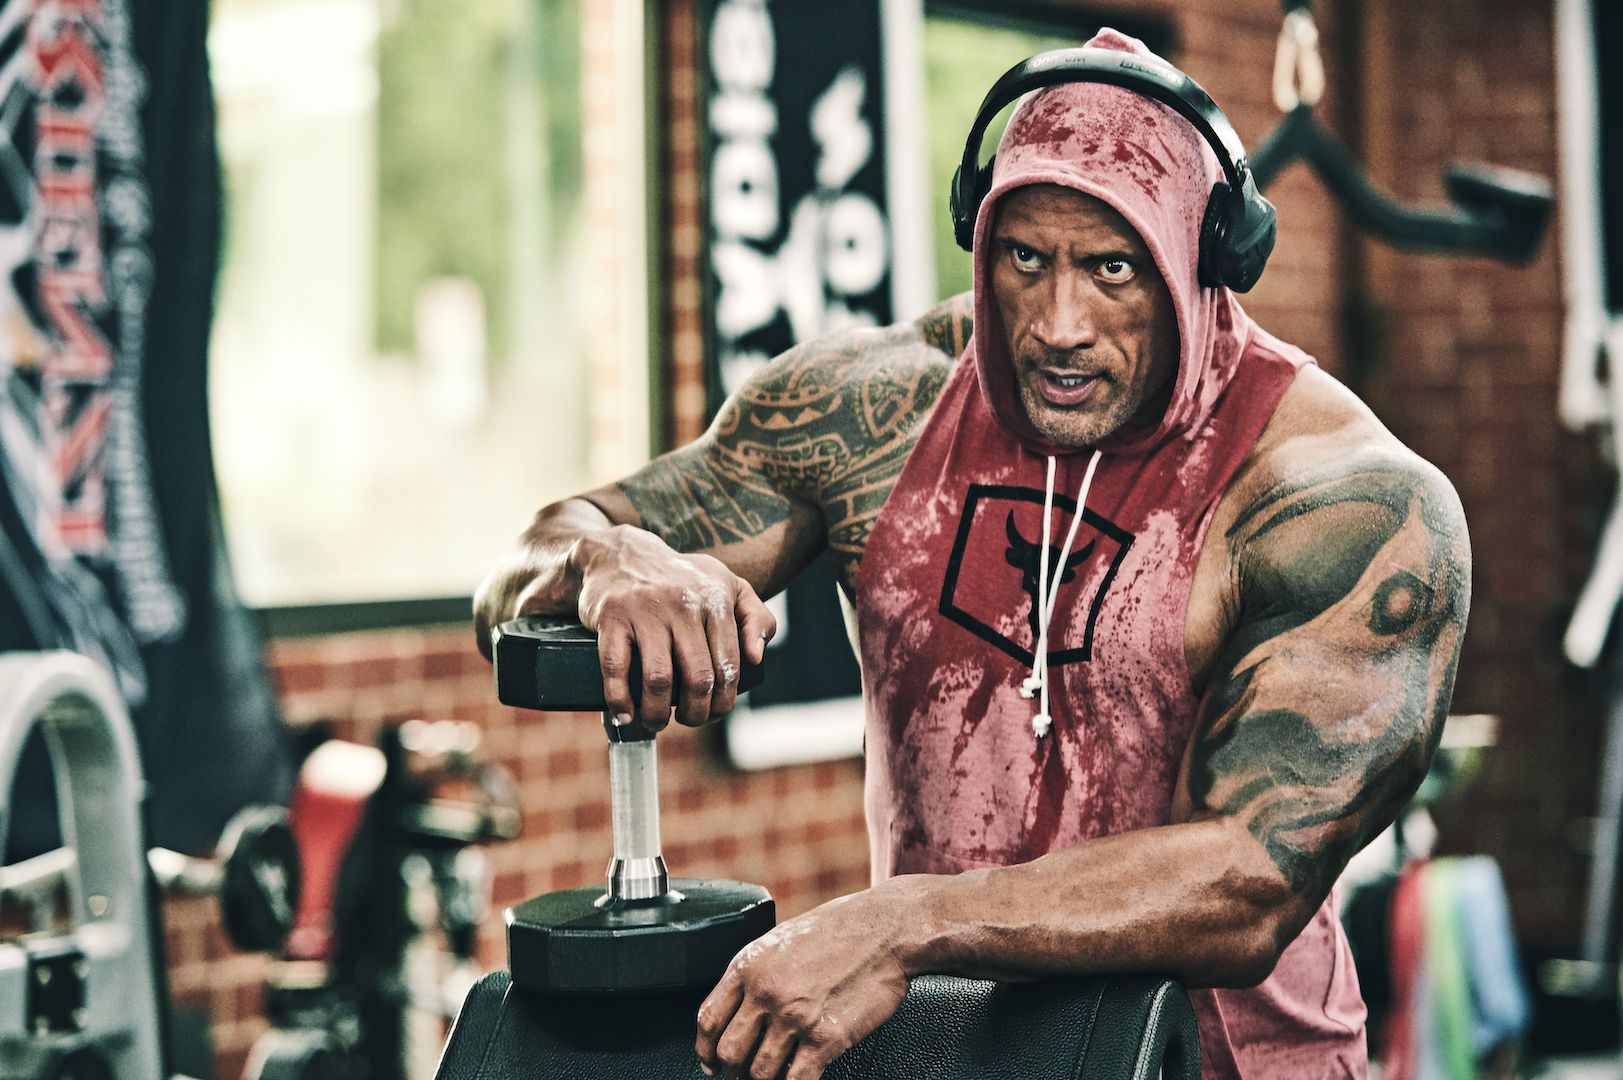 The Rock's Chest Workout Is a Smart Way to Build Muscle With Less Weight